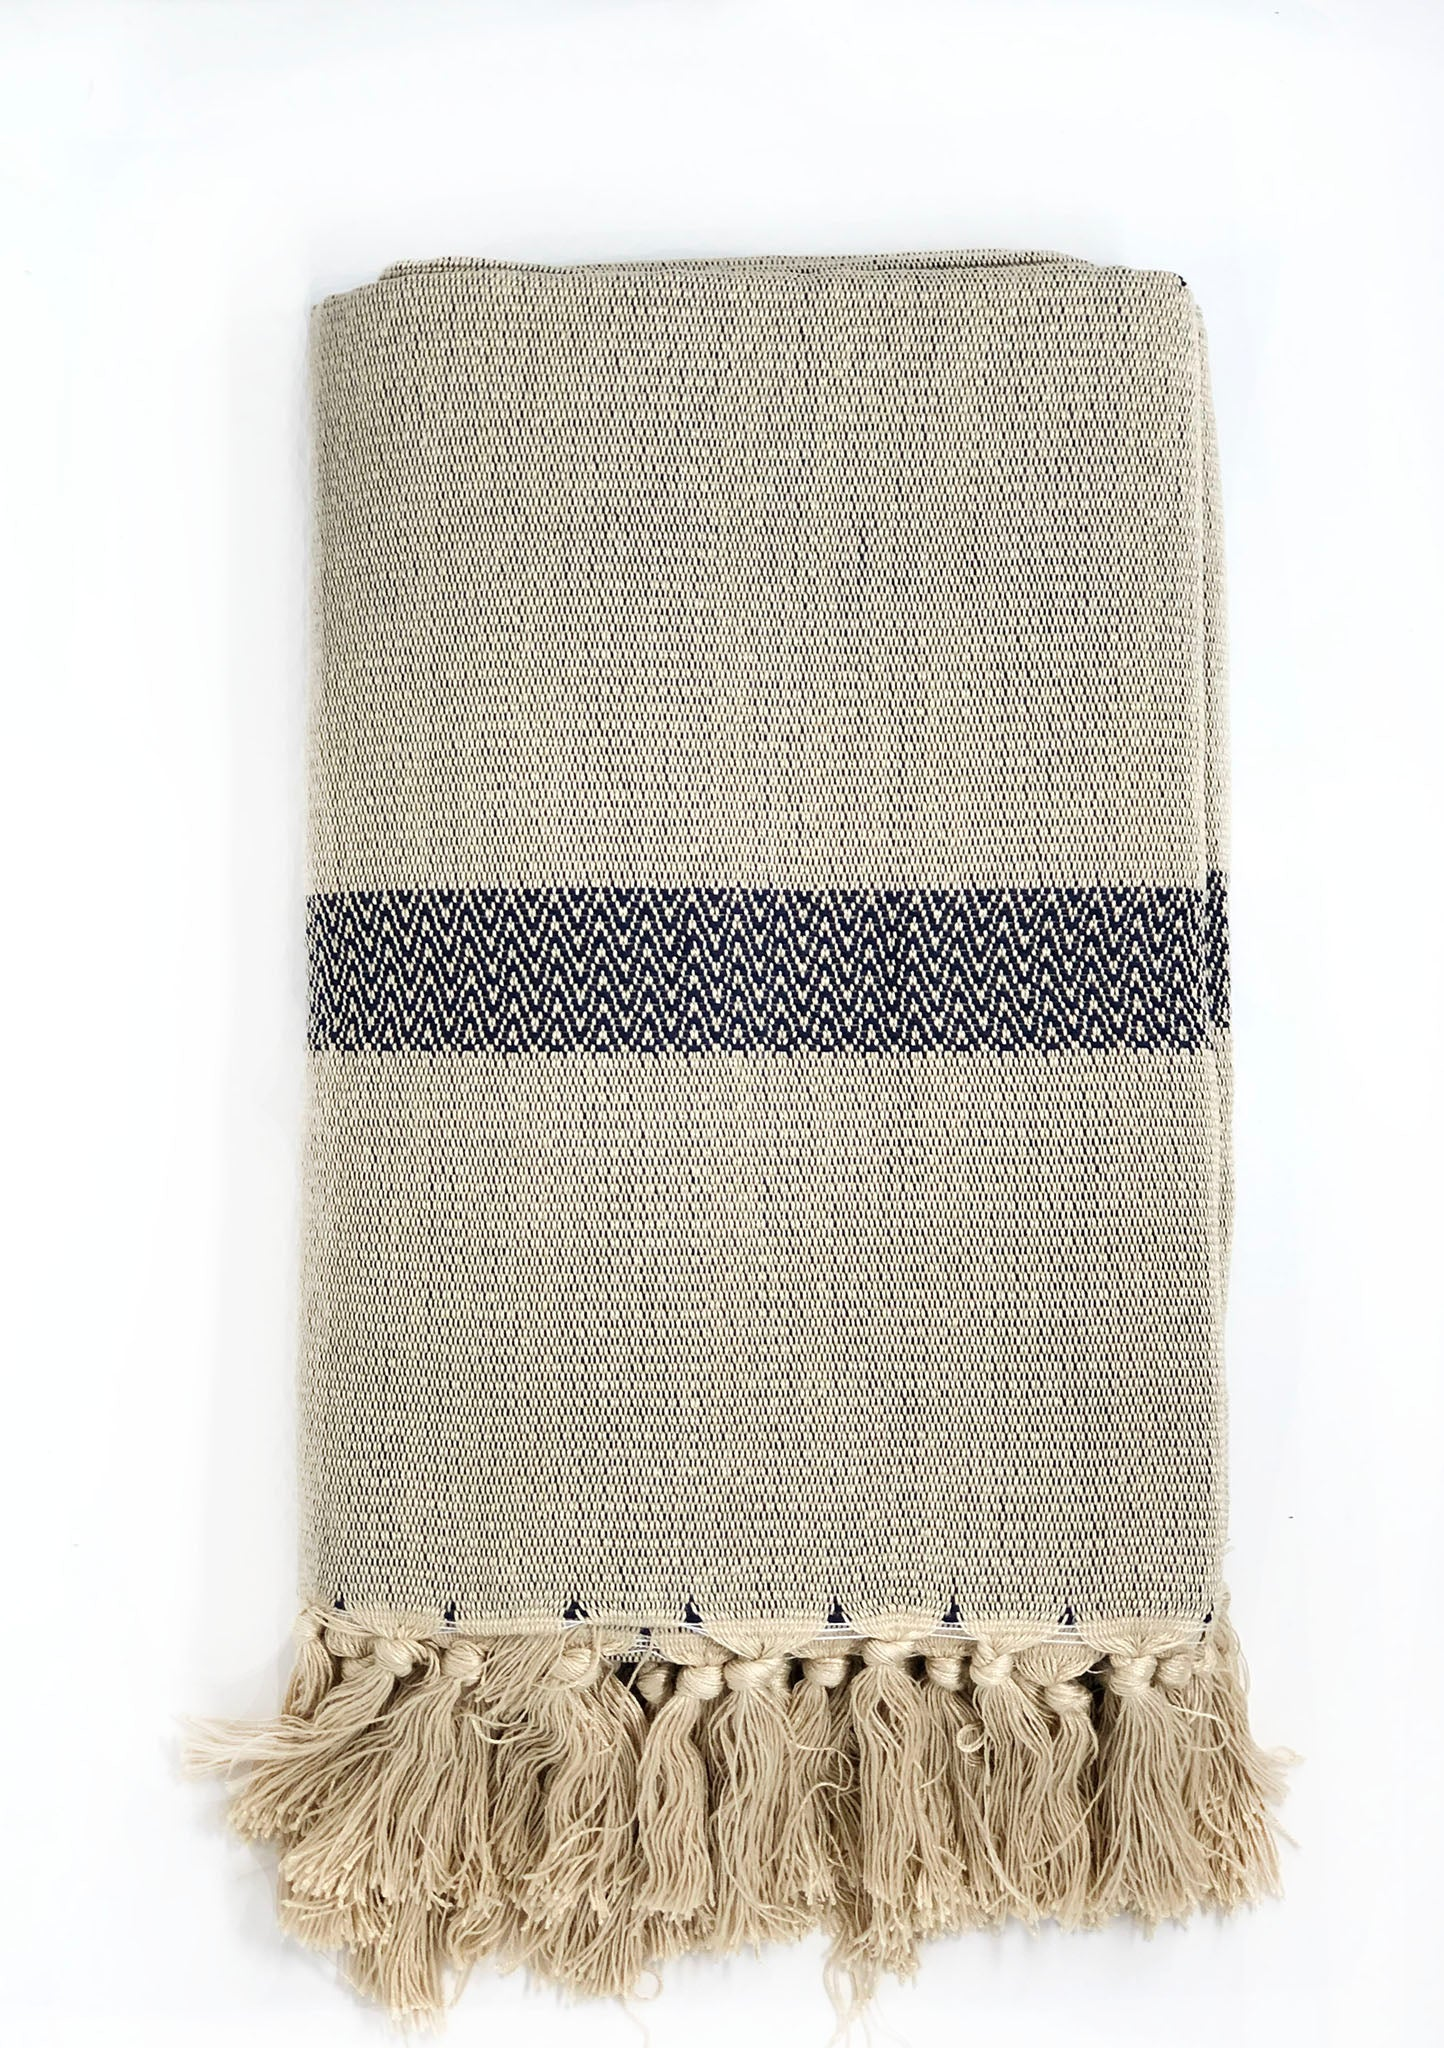 Handwoven bamboo and cotton throw.